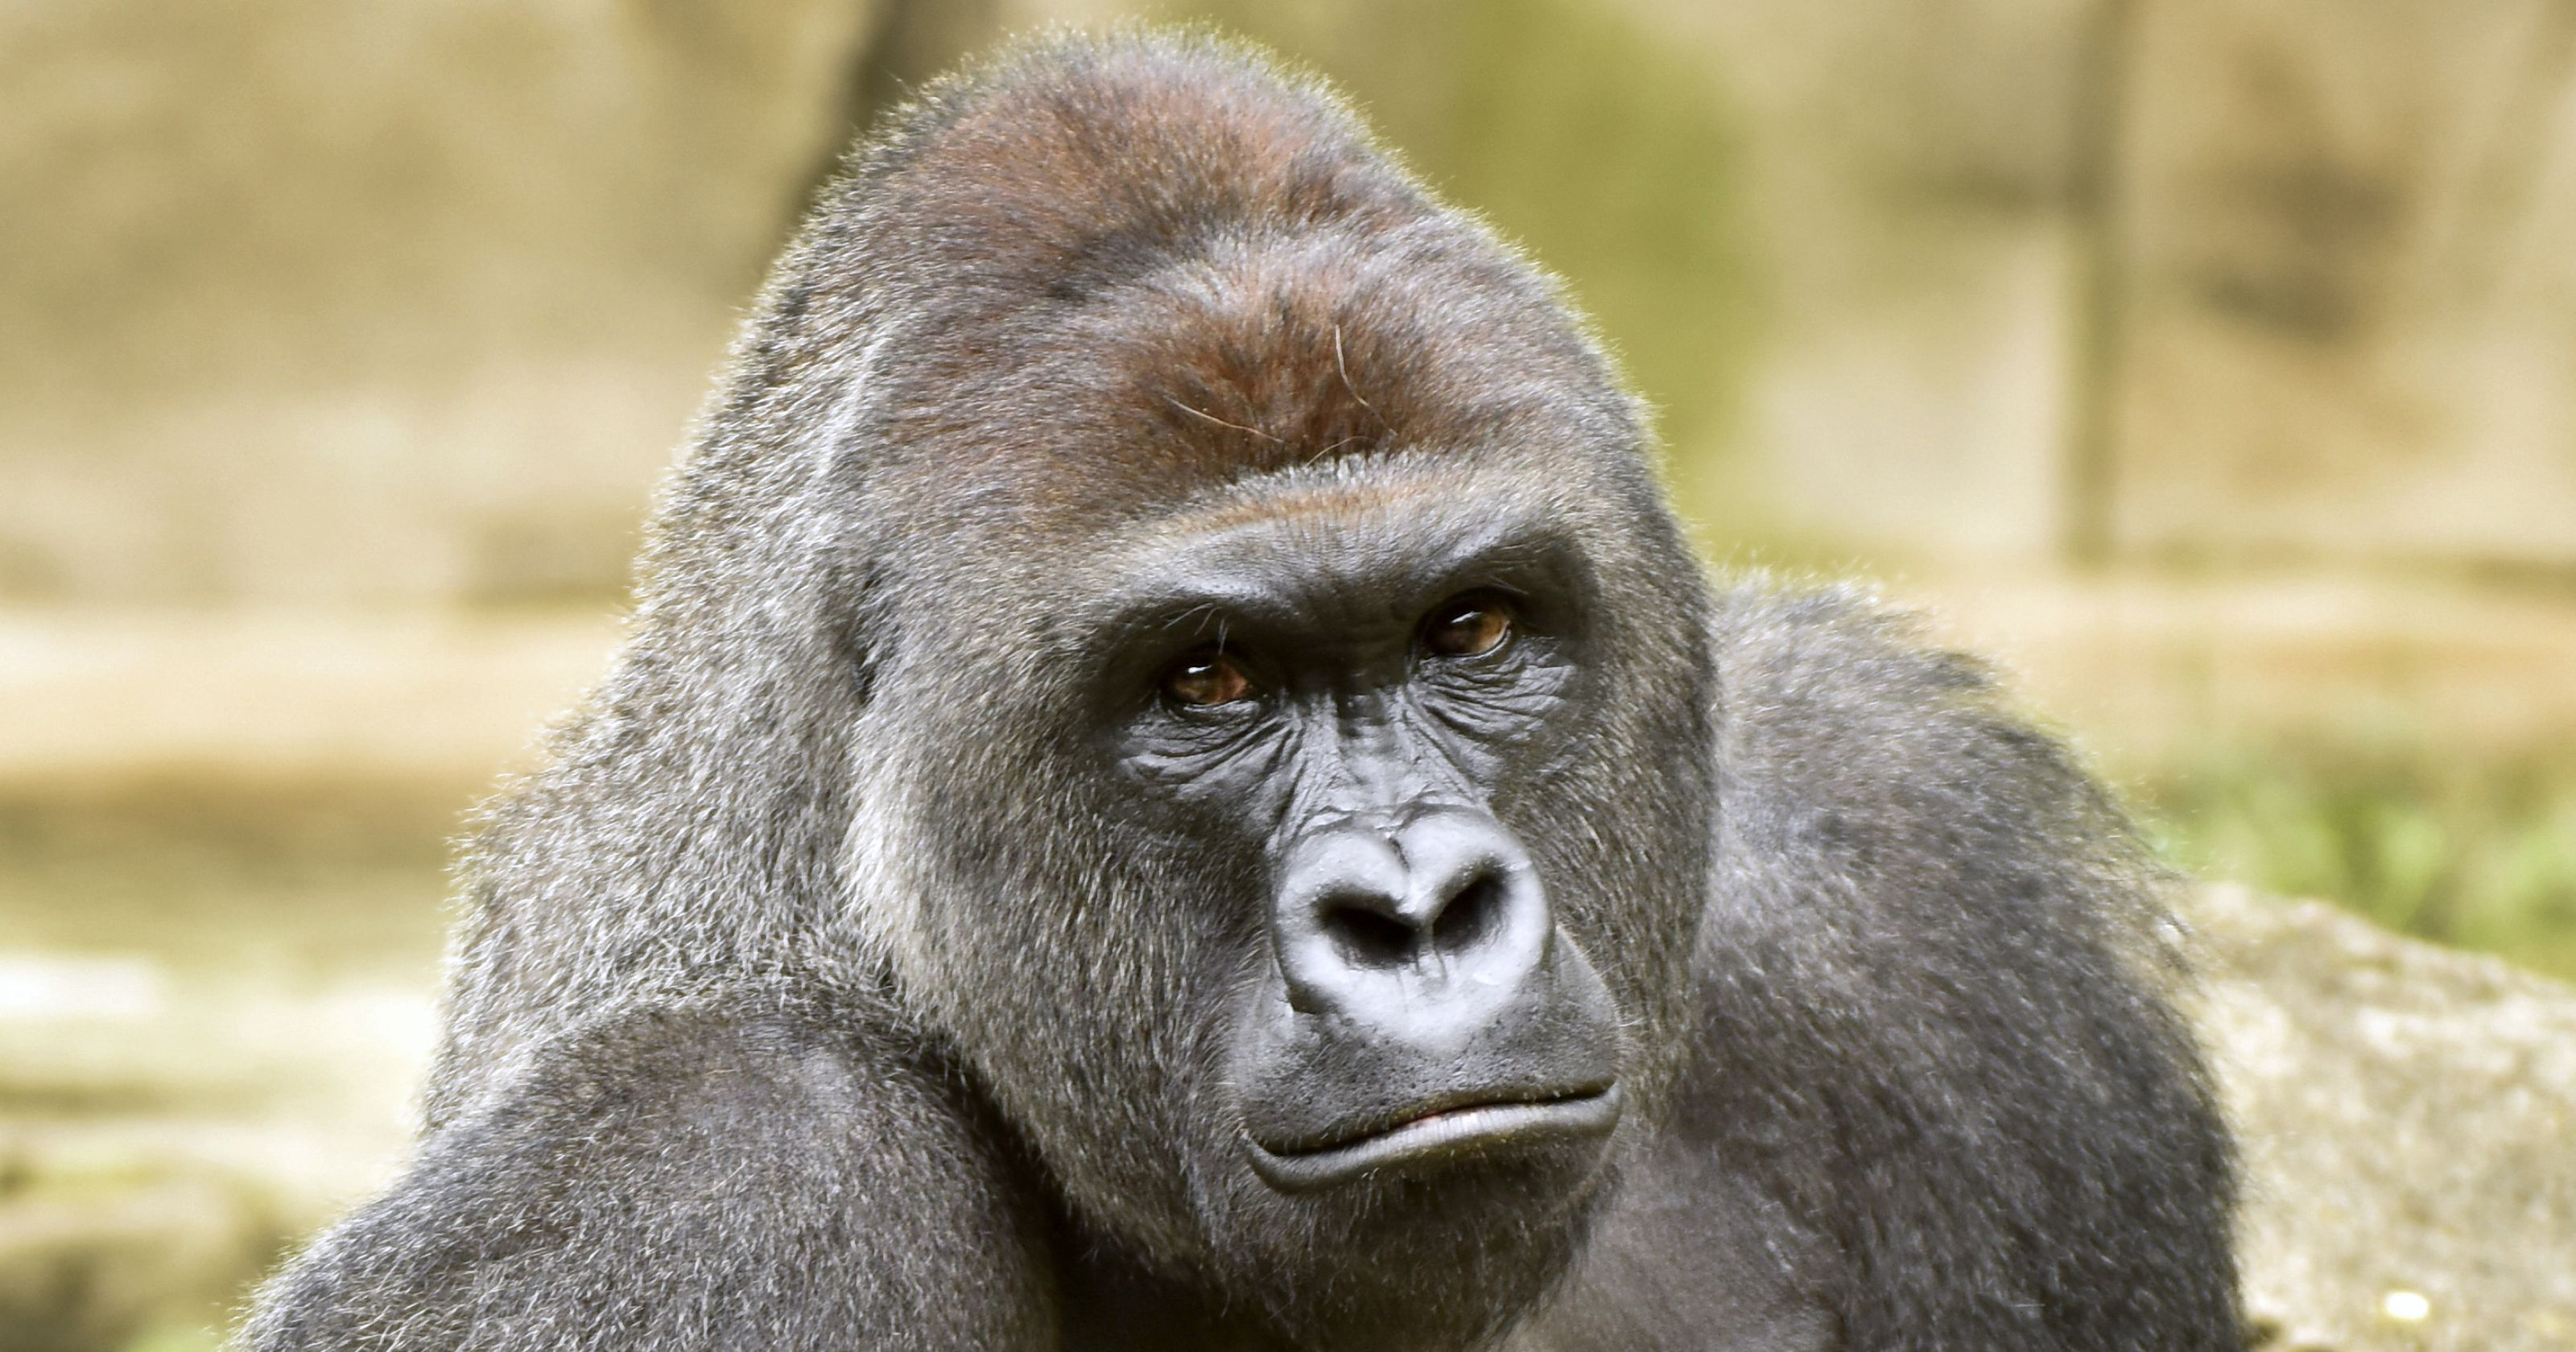 Gorilla killed after 3-year-old falls into zoo enclosure